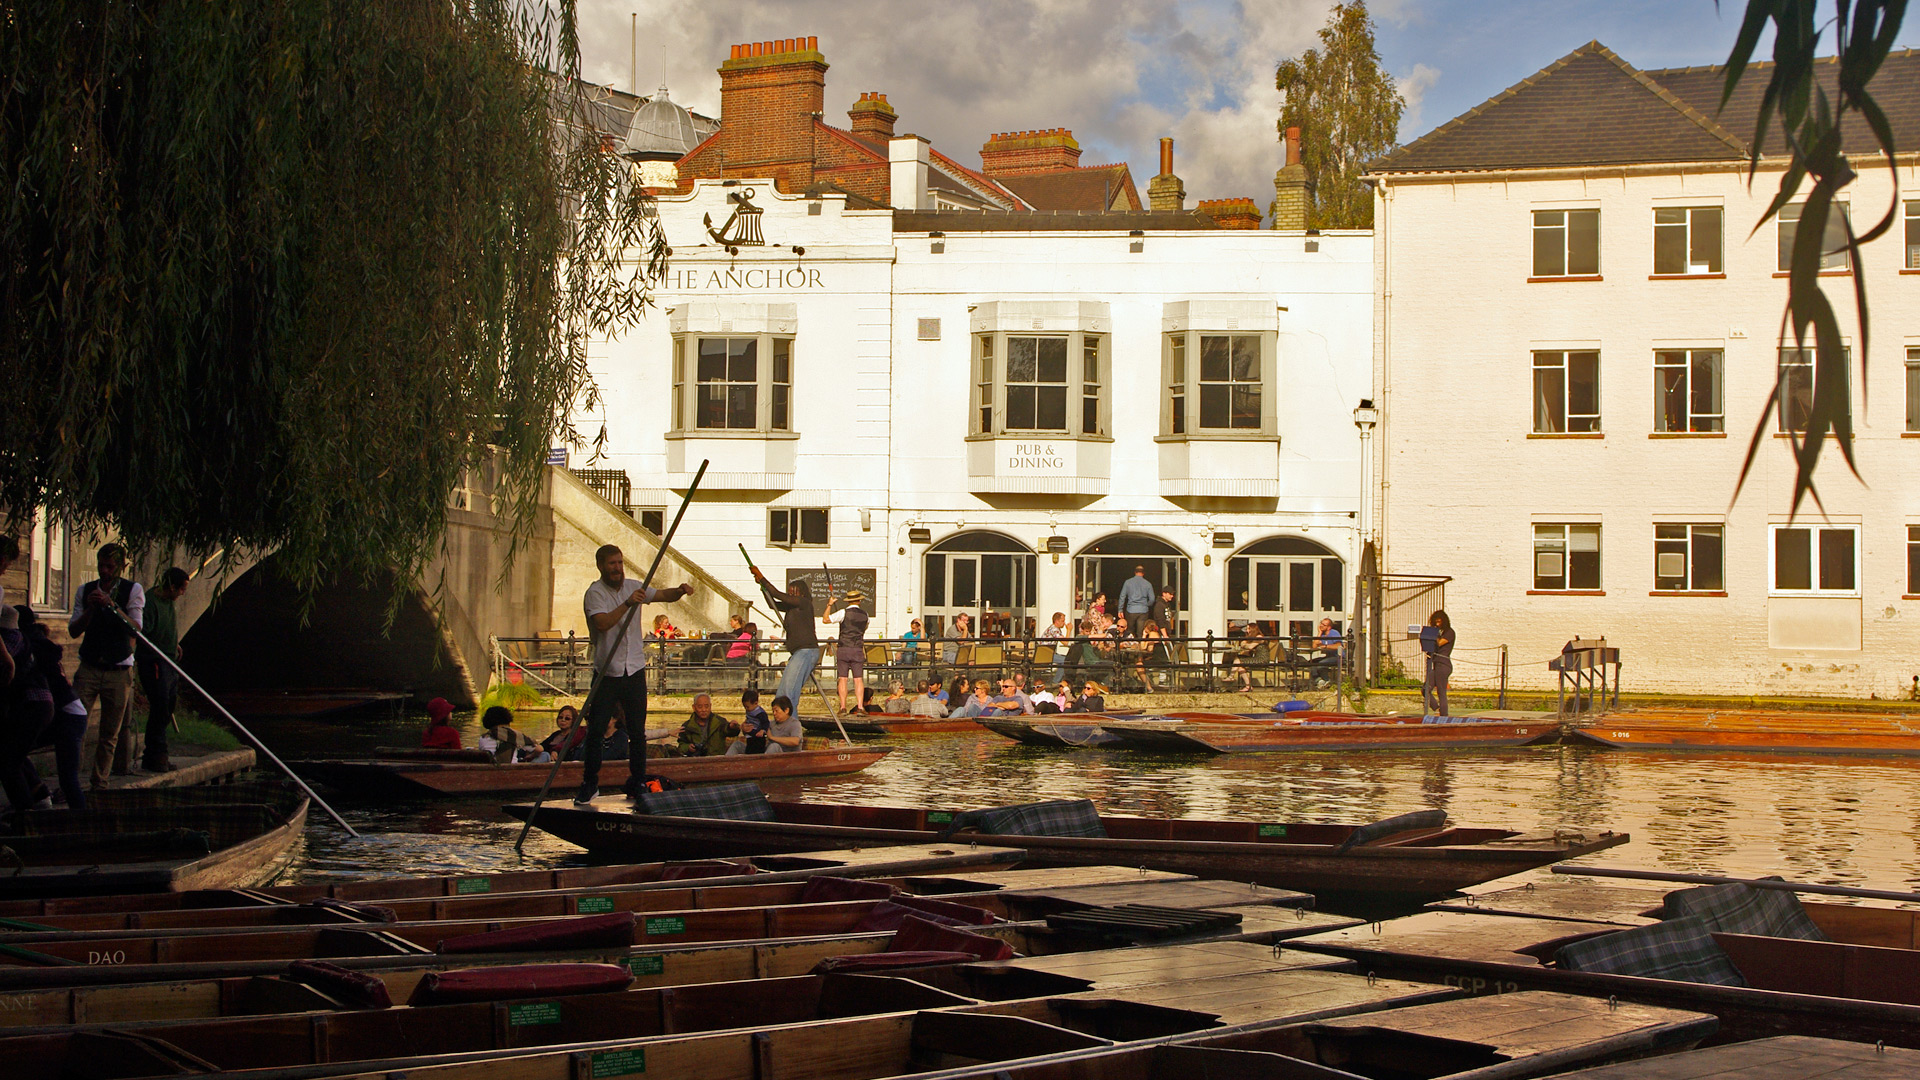 The Anchor pub and Scudamore's punting station Cambridge